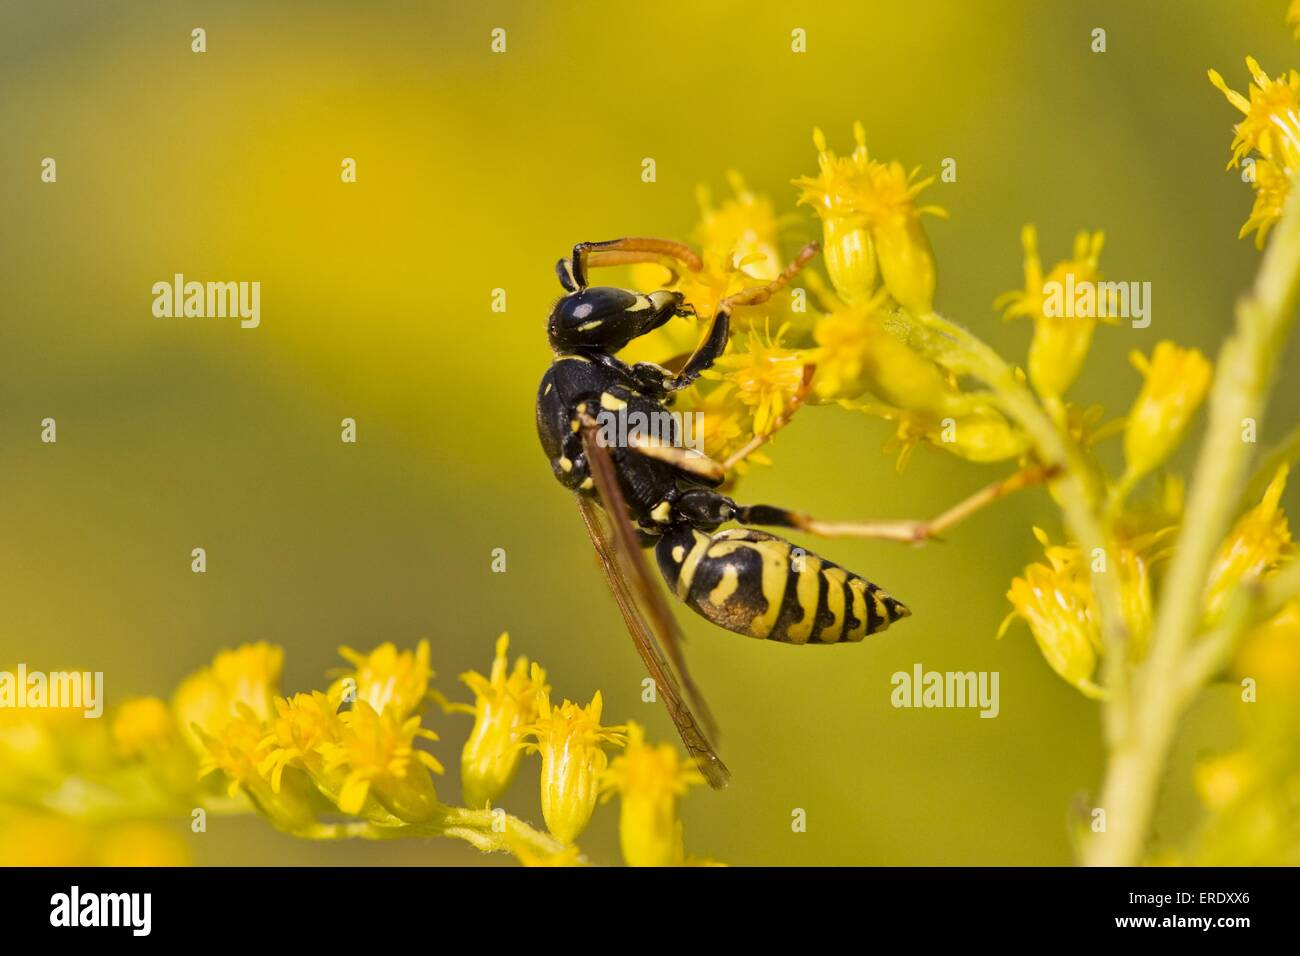 Common wasp - Stock Image